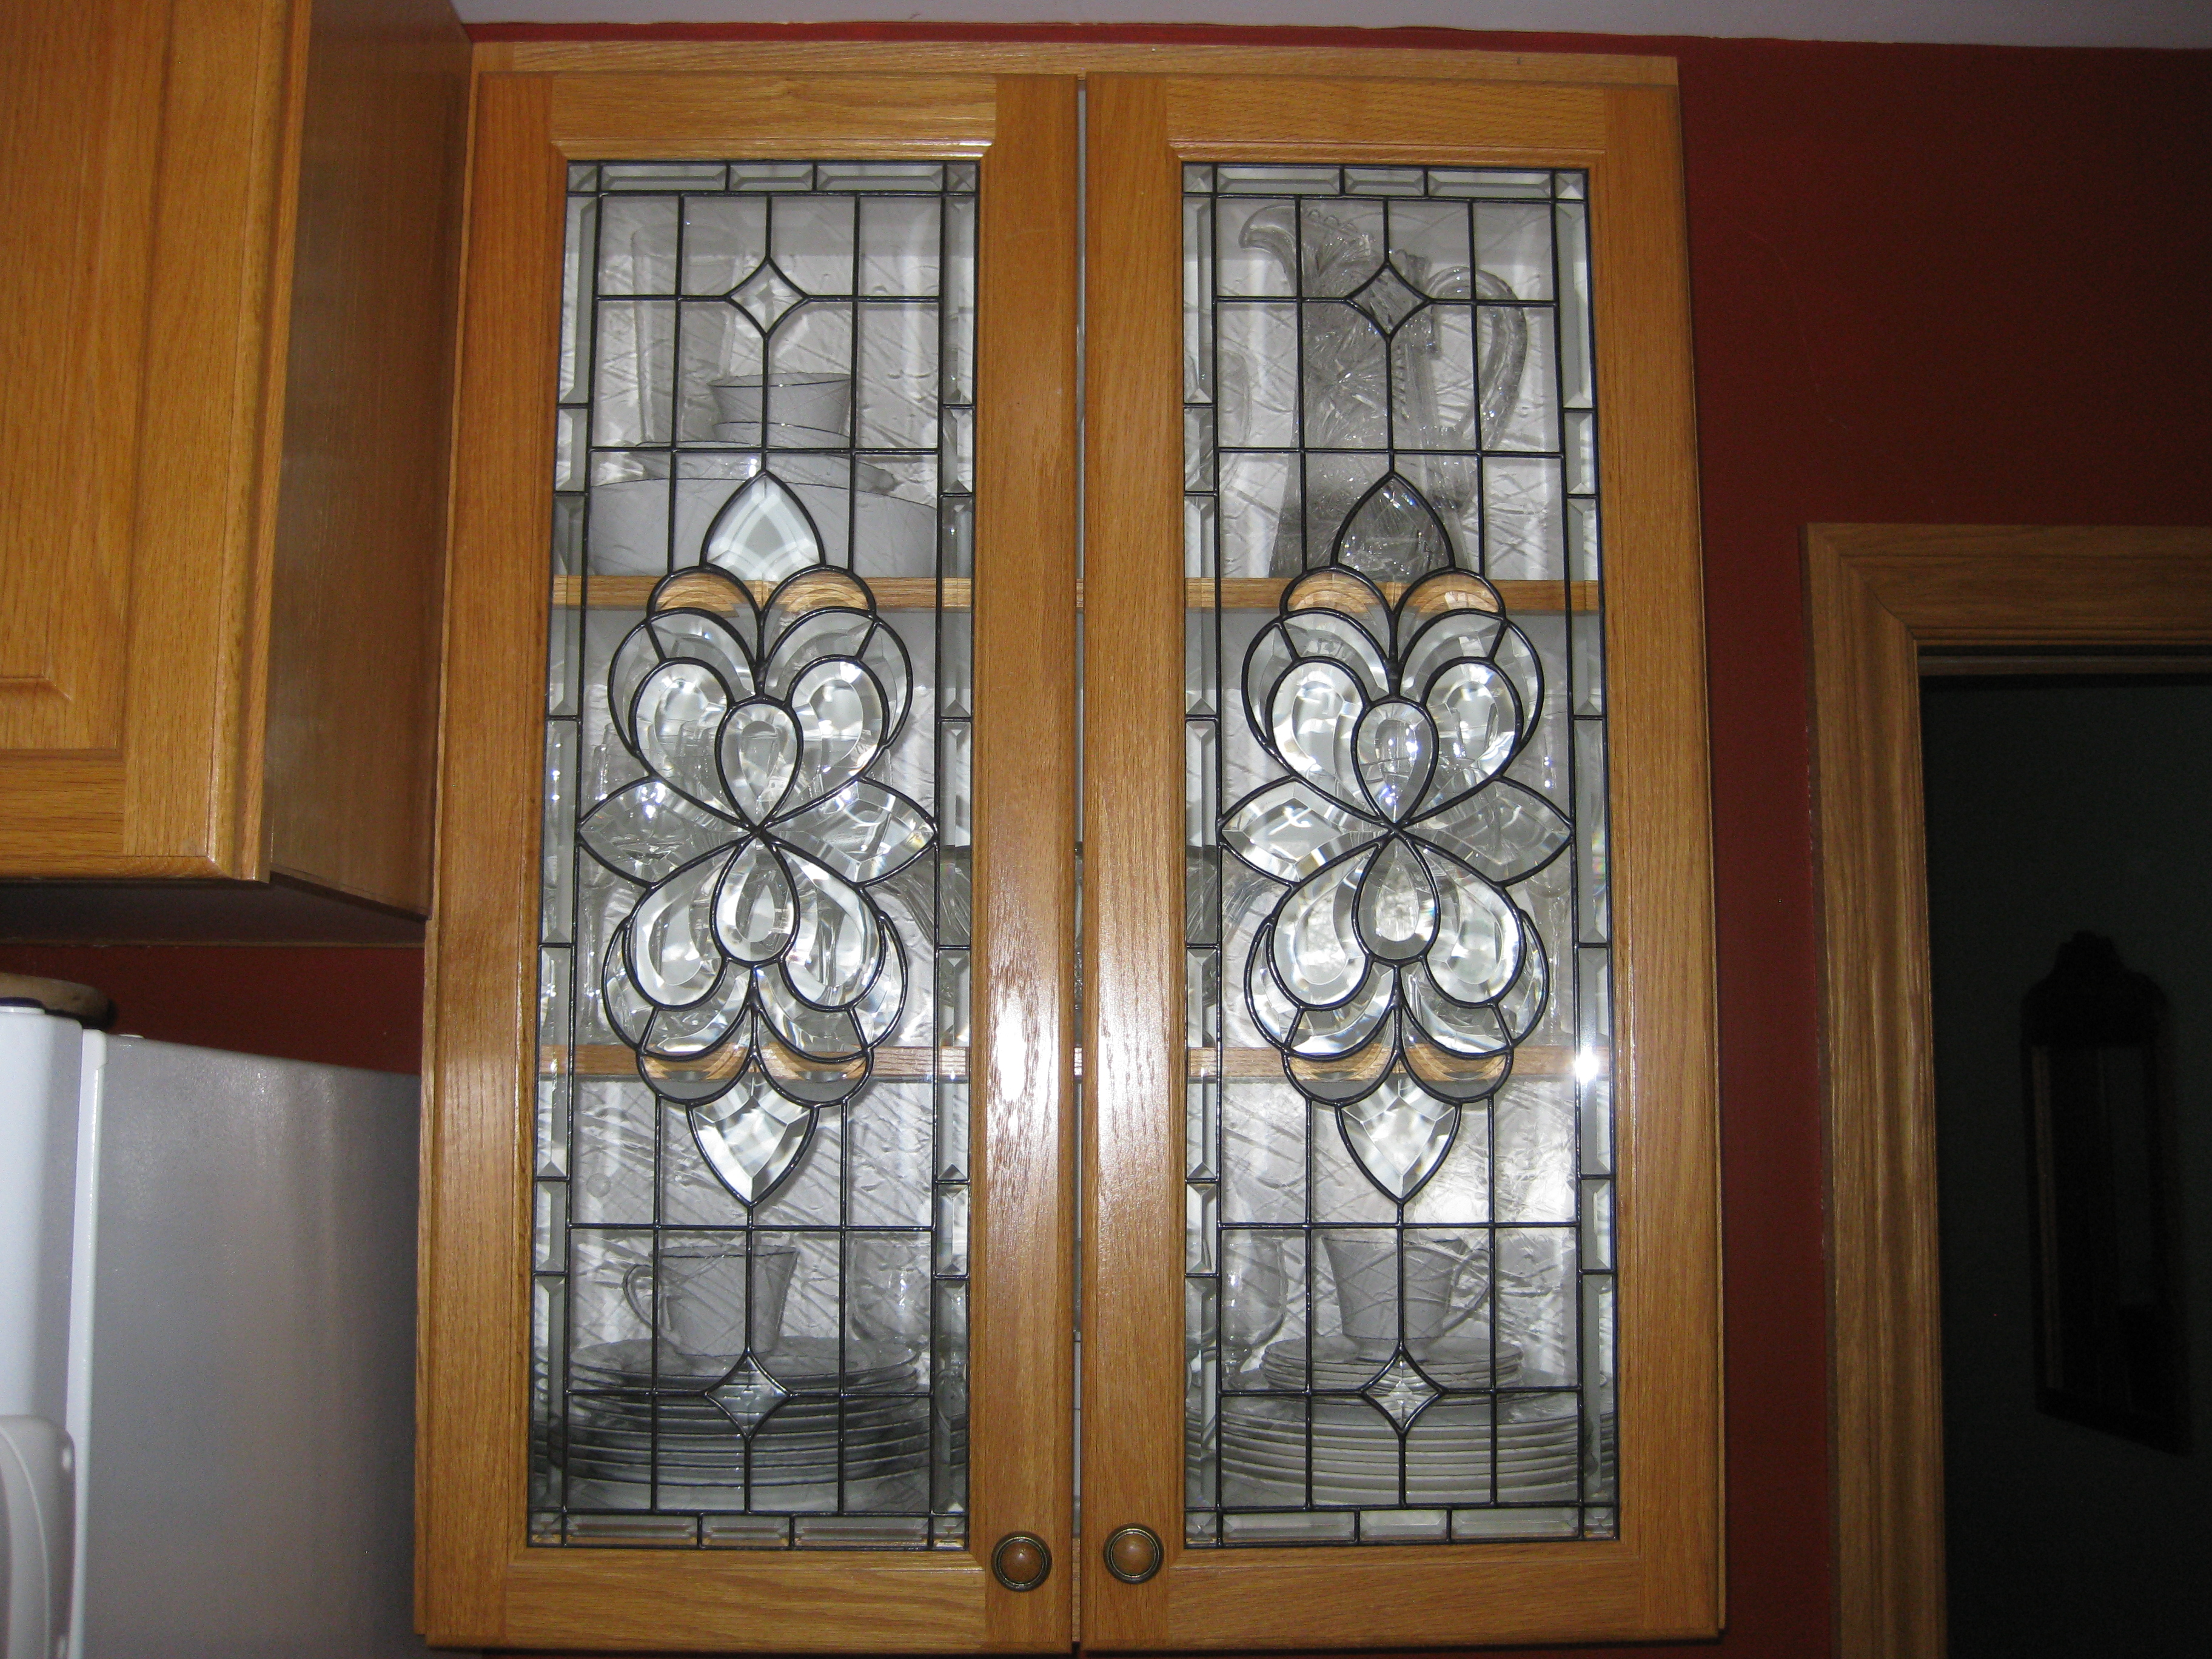 Fabulous Stained Glass Kitchen CabiDoors Stained Glass Kitchen CabiDoors  3648 X 2736 · 5045 KB · Jpeg